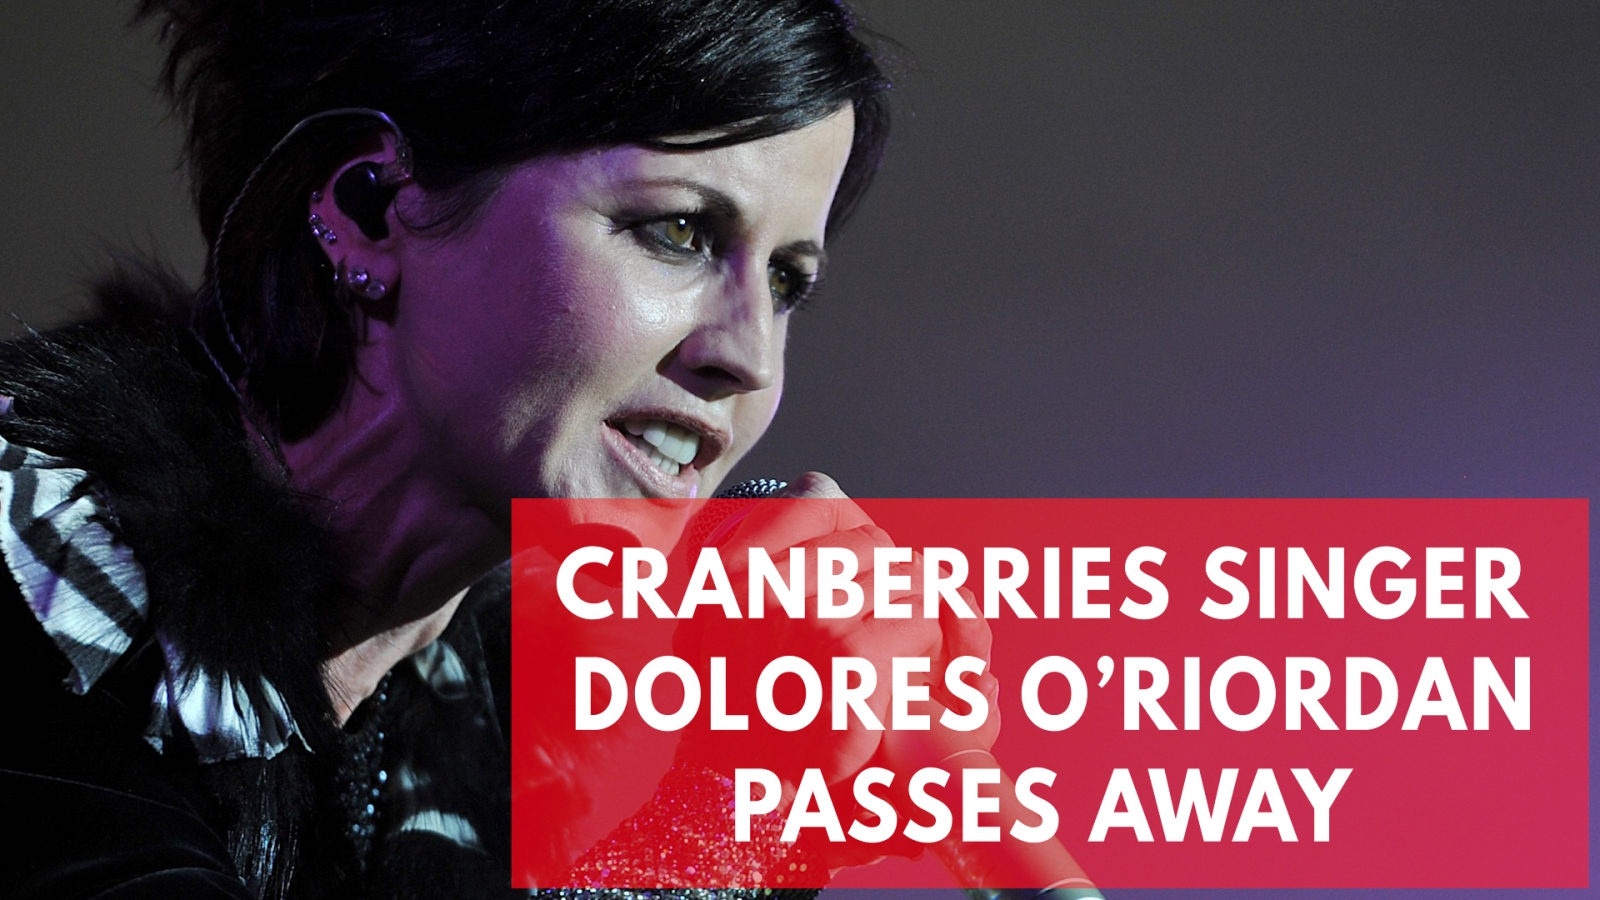 dolores-oriordan-dead-cranberries-singer-passes-away-at-age-46